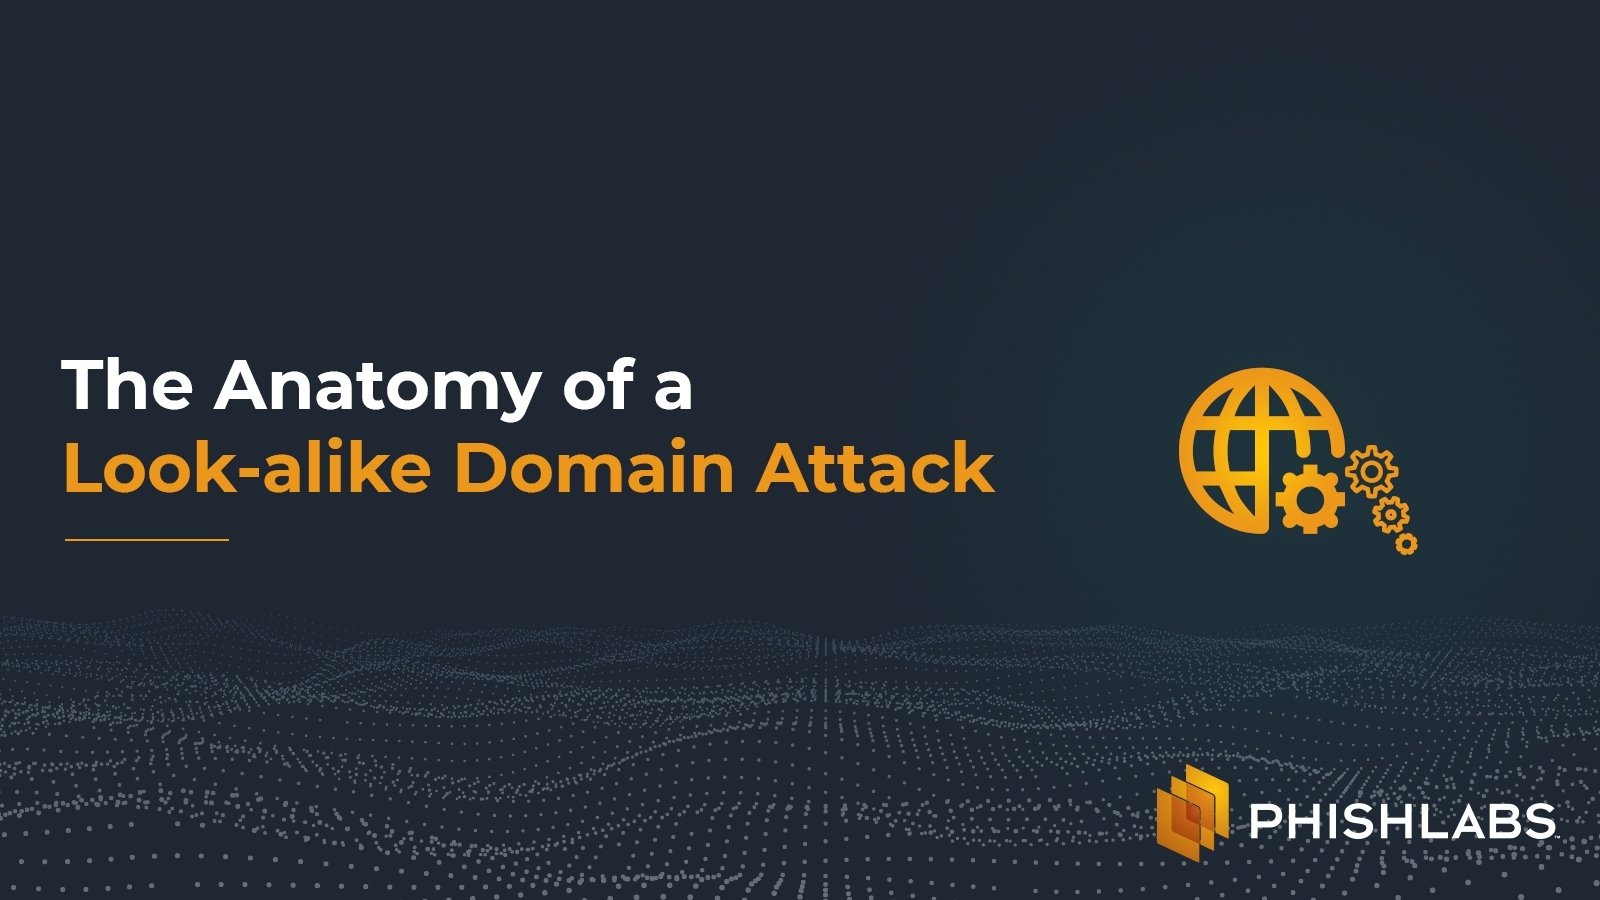 The Anatomy of a Look-alike Domain Attack